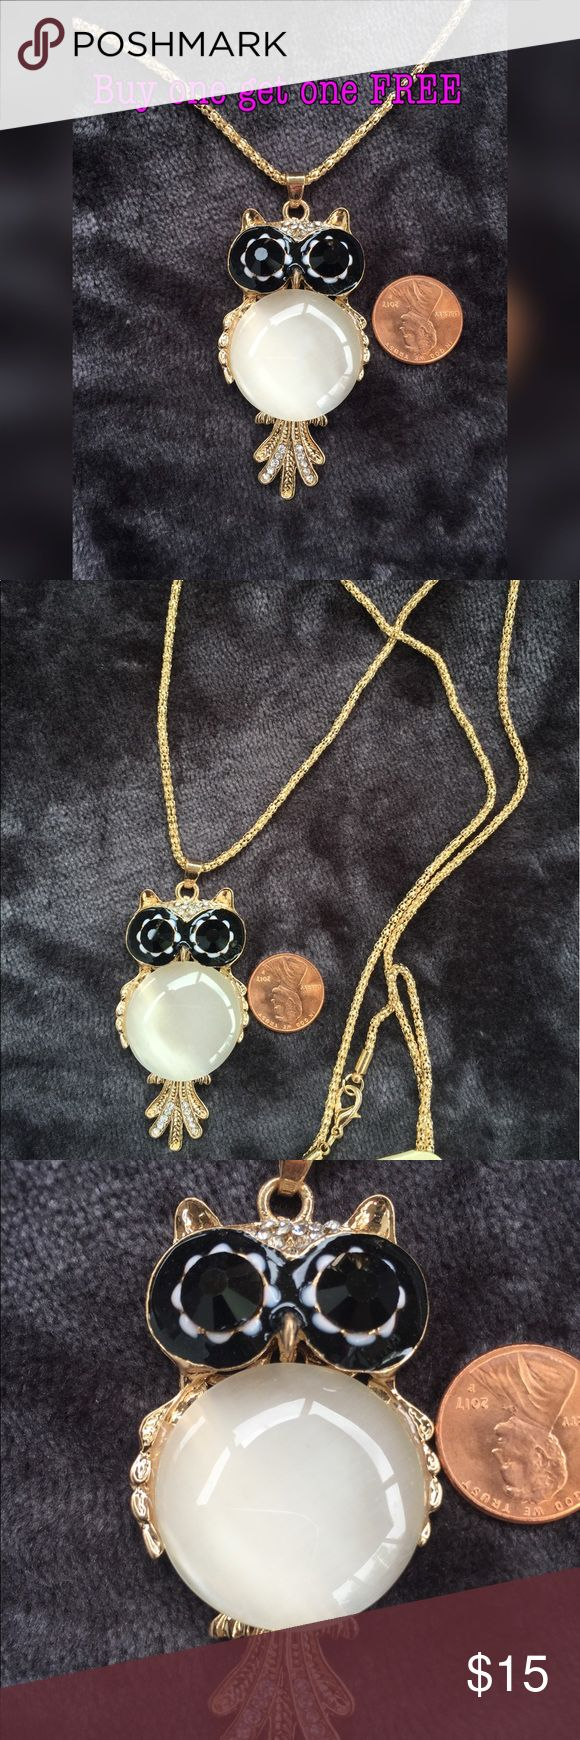 Rhinestones owl pendant necklace gold plated They are even prettier in person. ***BUY 1 Get 1 FREE (equal or less value) - Price is firm except bundle - Bundle: 5% off (2 items), 10% off (3 items), 15% off (4 or more items)  Keyword to what I sell: silver plated jewelry white yellow gold rose gold earrings ring bracelet bangles necklace anklet bracelet baby small medium large huge hoop earrings. Stud earrings Fidget spinners  Dog cat toys cosmetics fashion jewelry emerald cut ring nickel…